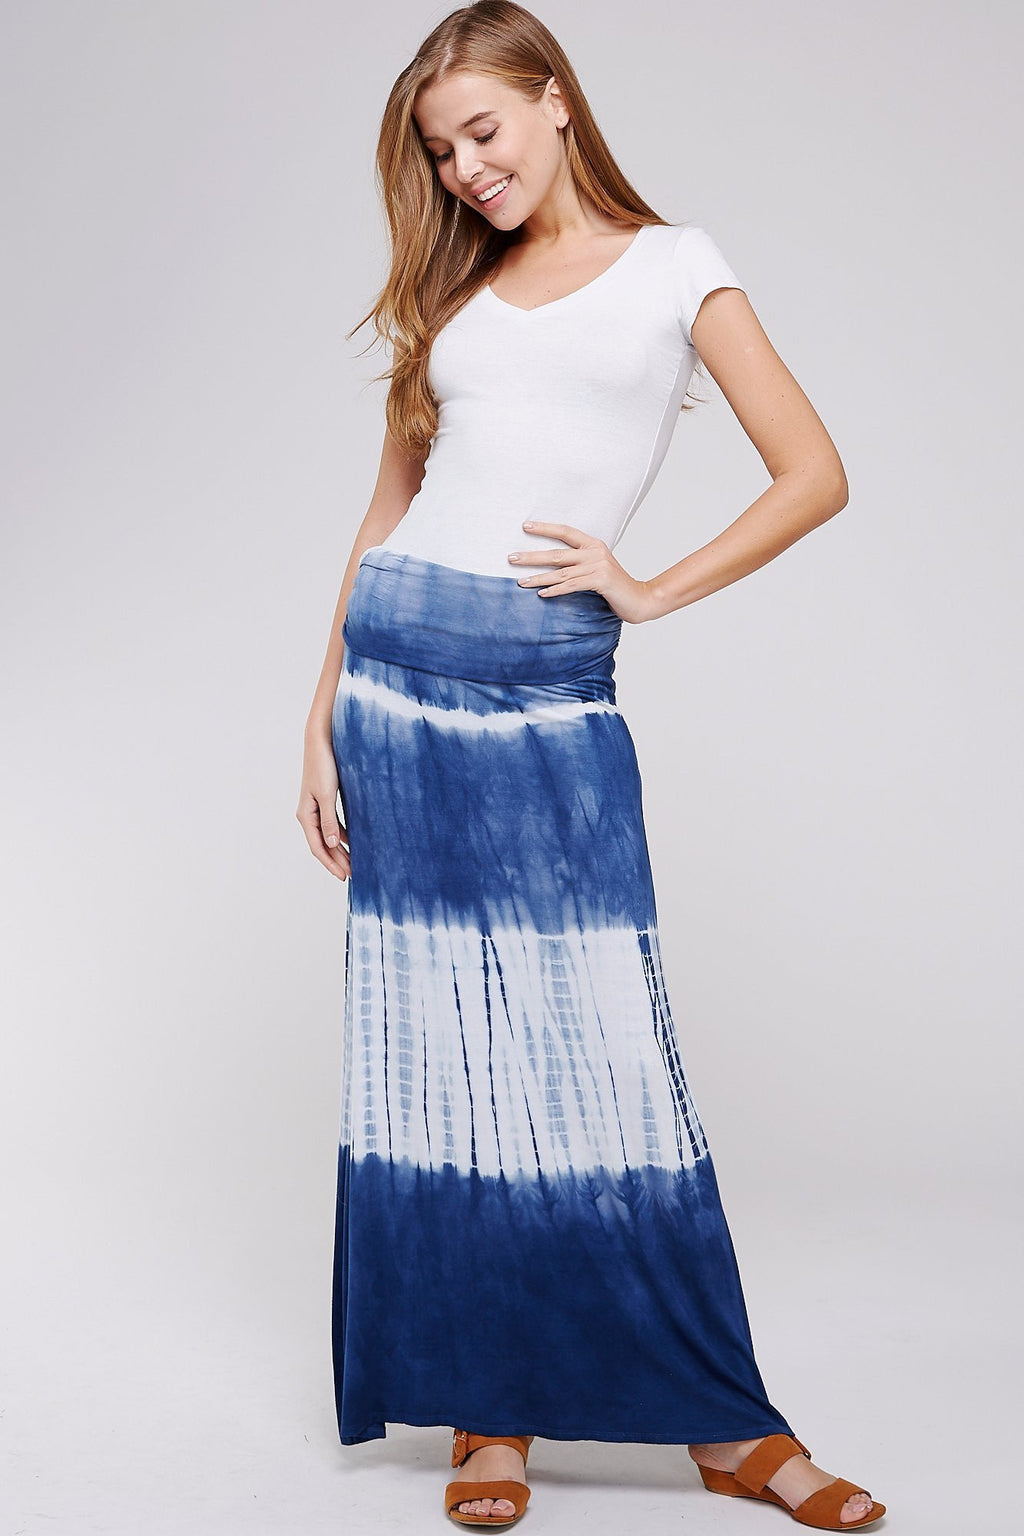 Wholesale Clothing, Online Wholesale Clothing, Women Clothing, Bohemian, Free People, tiedye, specialty wash, wholesale seller, wholesale women clothing shop, gypsy look, USA made, URBAN X APPAREL-SKIRTS-USR3206N, fashiontrend2019